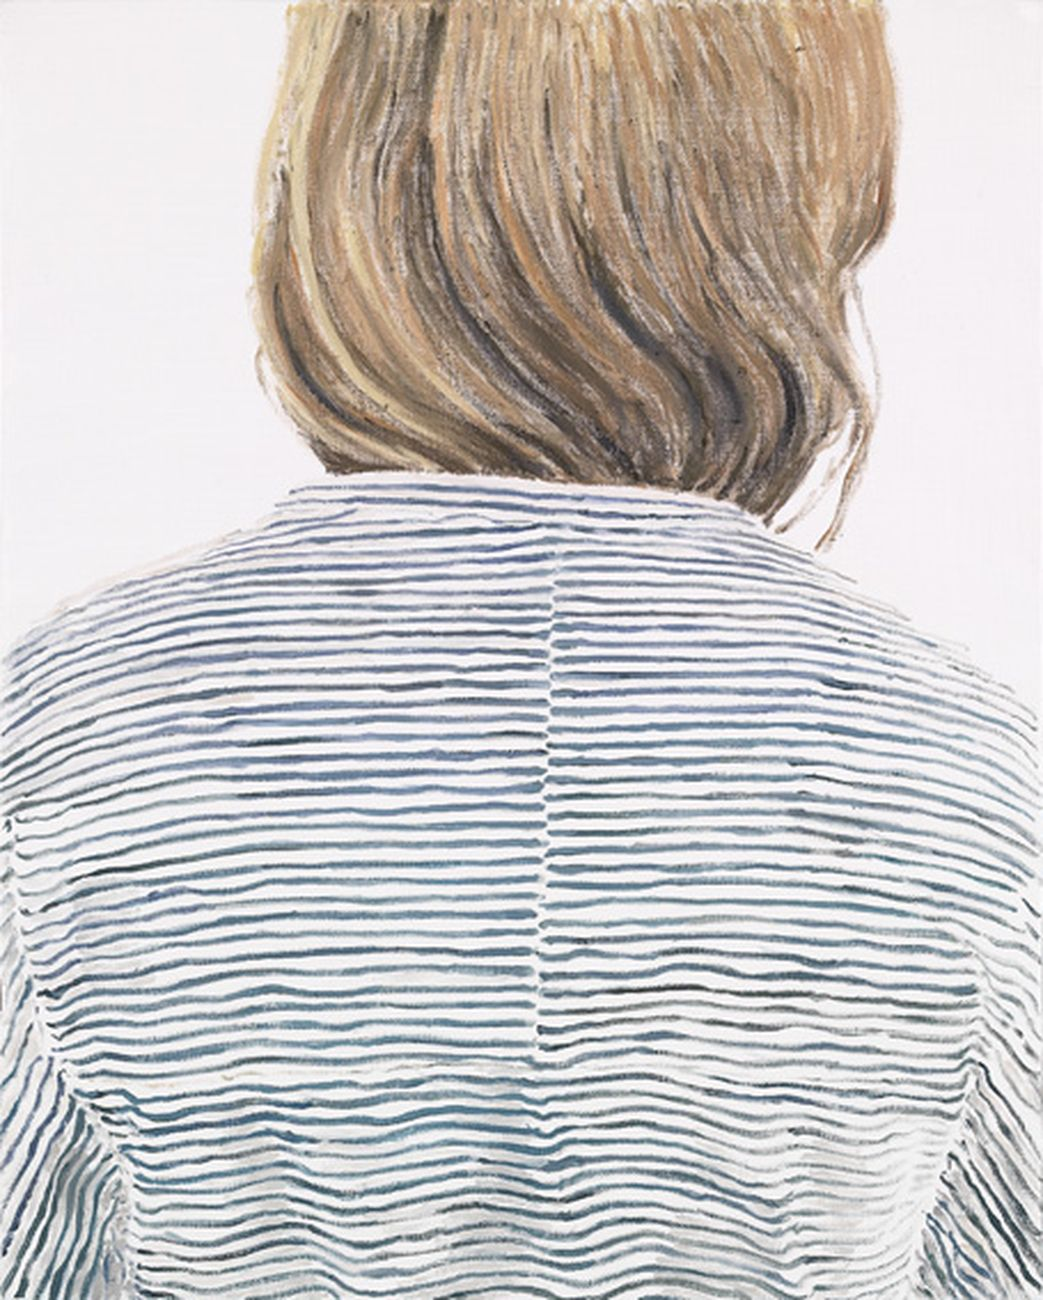 Gianluca Di Pasquale, Stripes, 2011